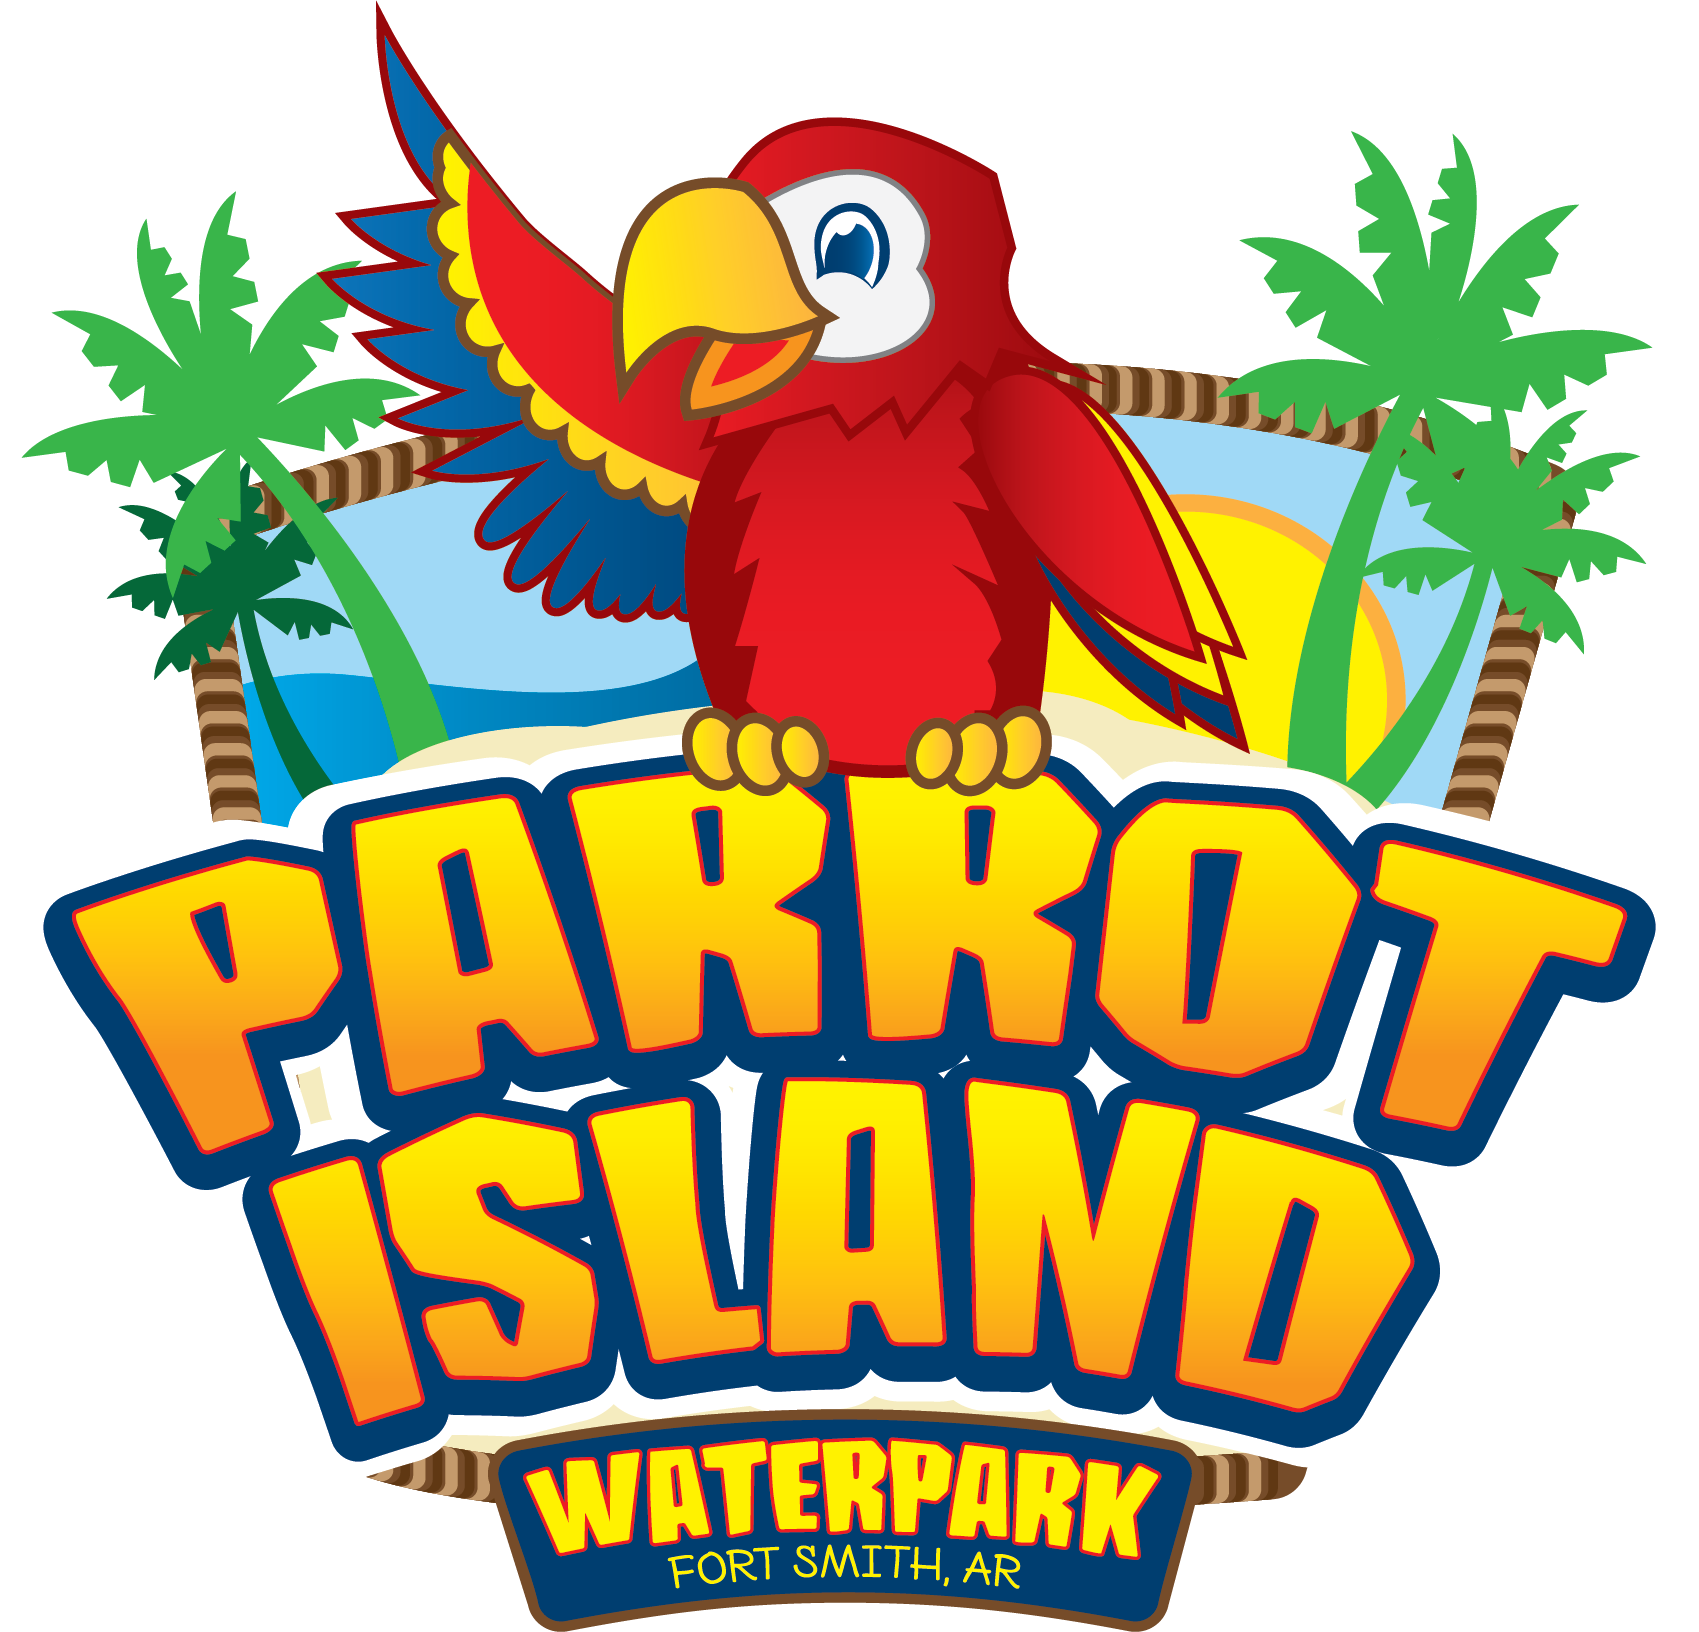 1699x1632 Parrot Island Waterpark Home